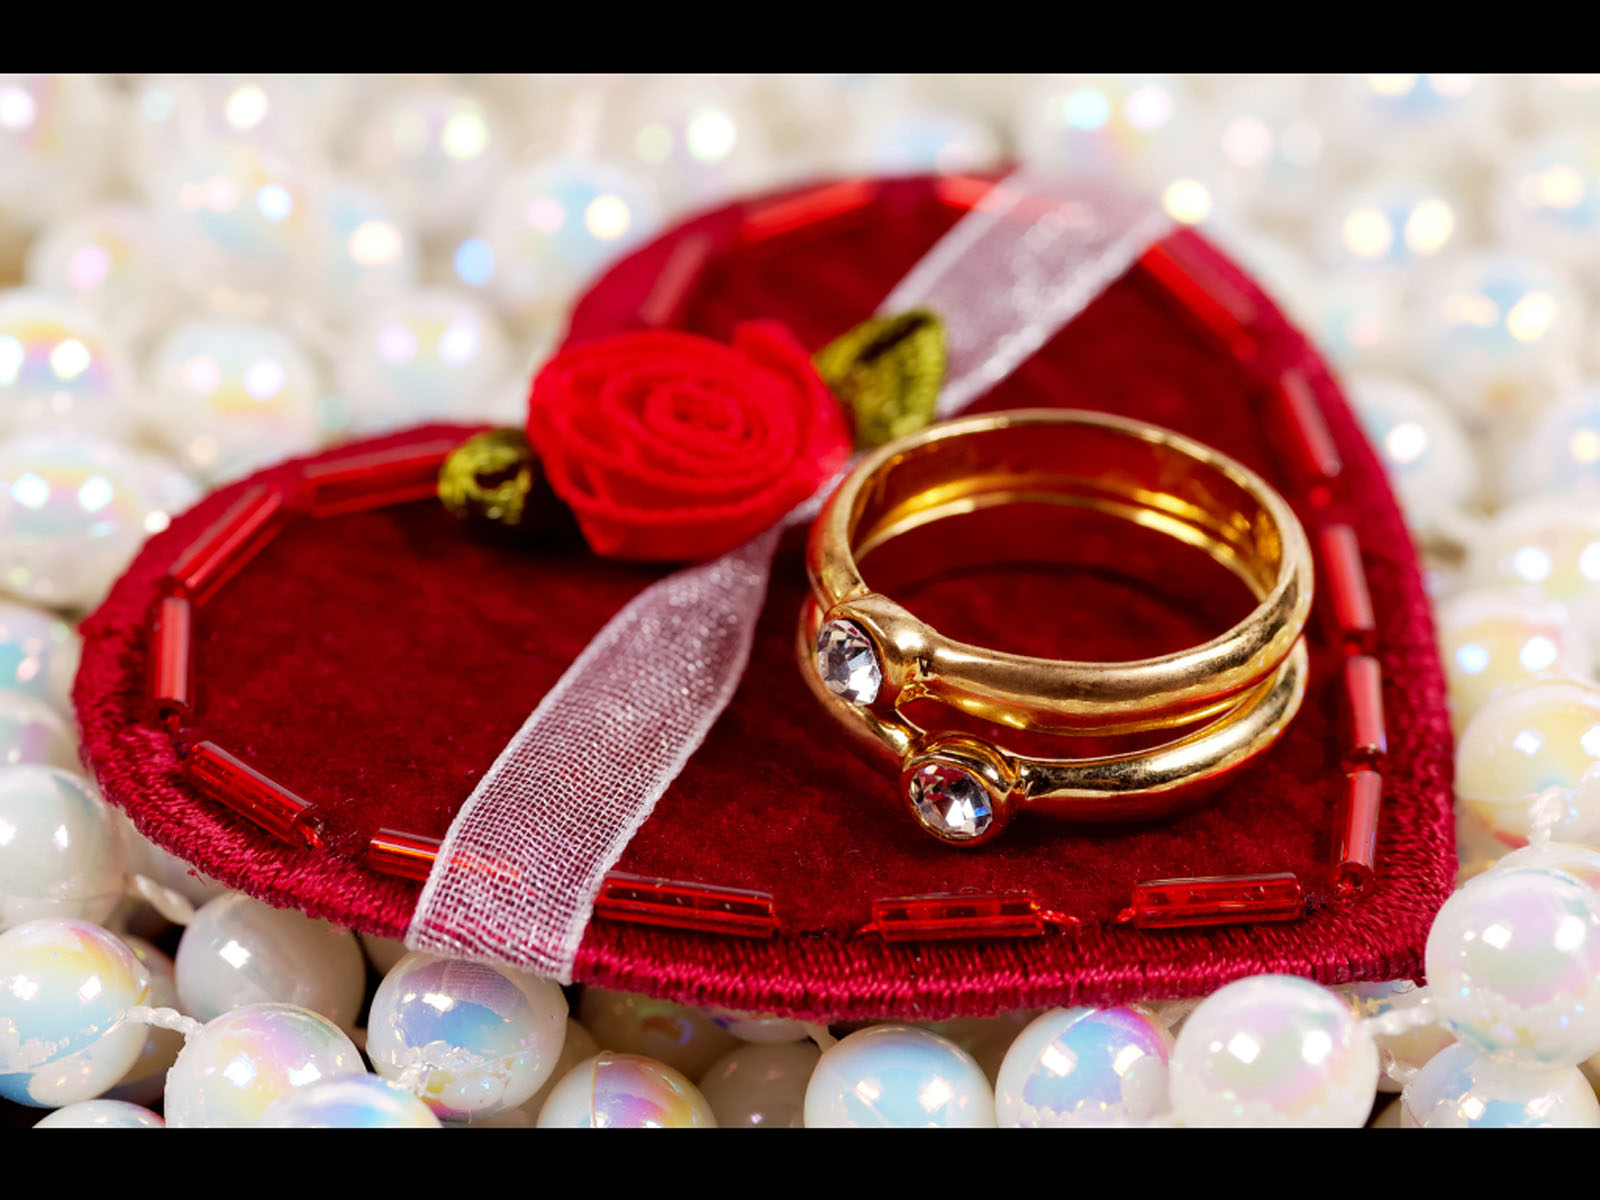 Car Press: 16 Valentines Day Gifts Wallpapers 2013